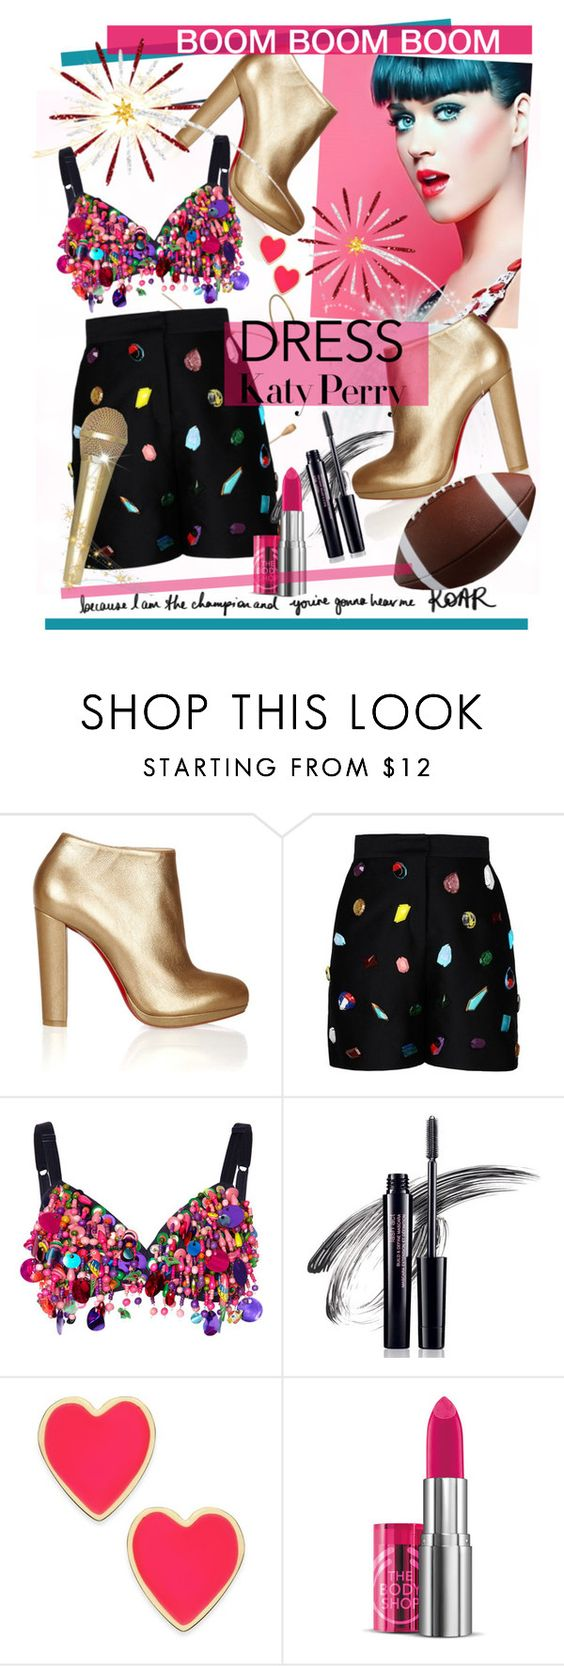 """Katy Perry"" by cutandpaste ❤ liked on Polyvore featuring Christian Louboutin, STELLA McCARTNEY, Dolce&Gabbana, Avon and Kate Spade"